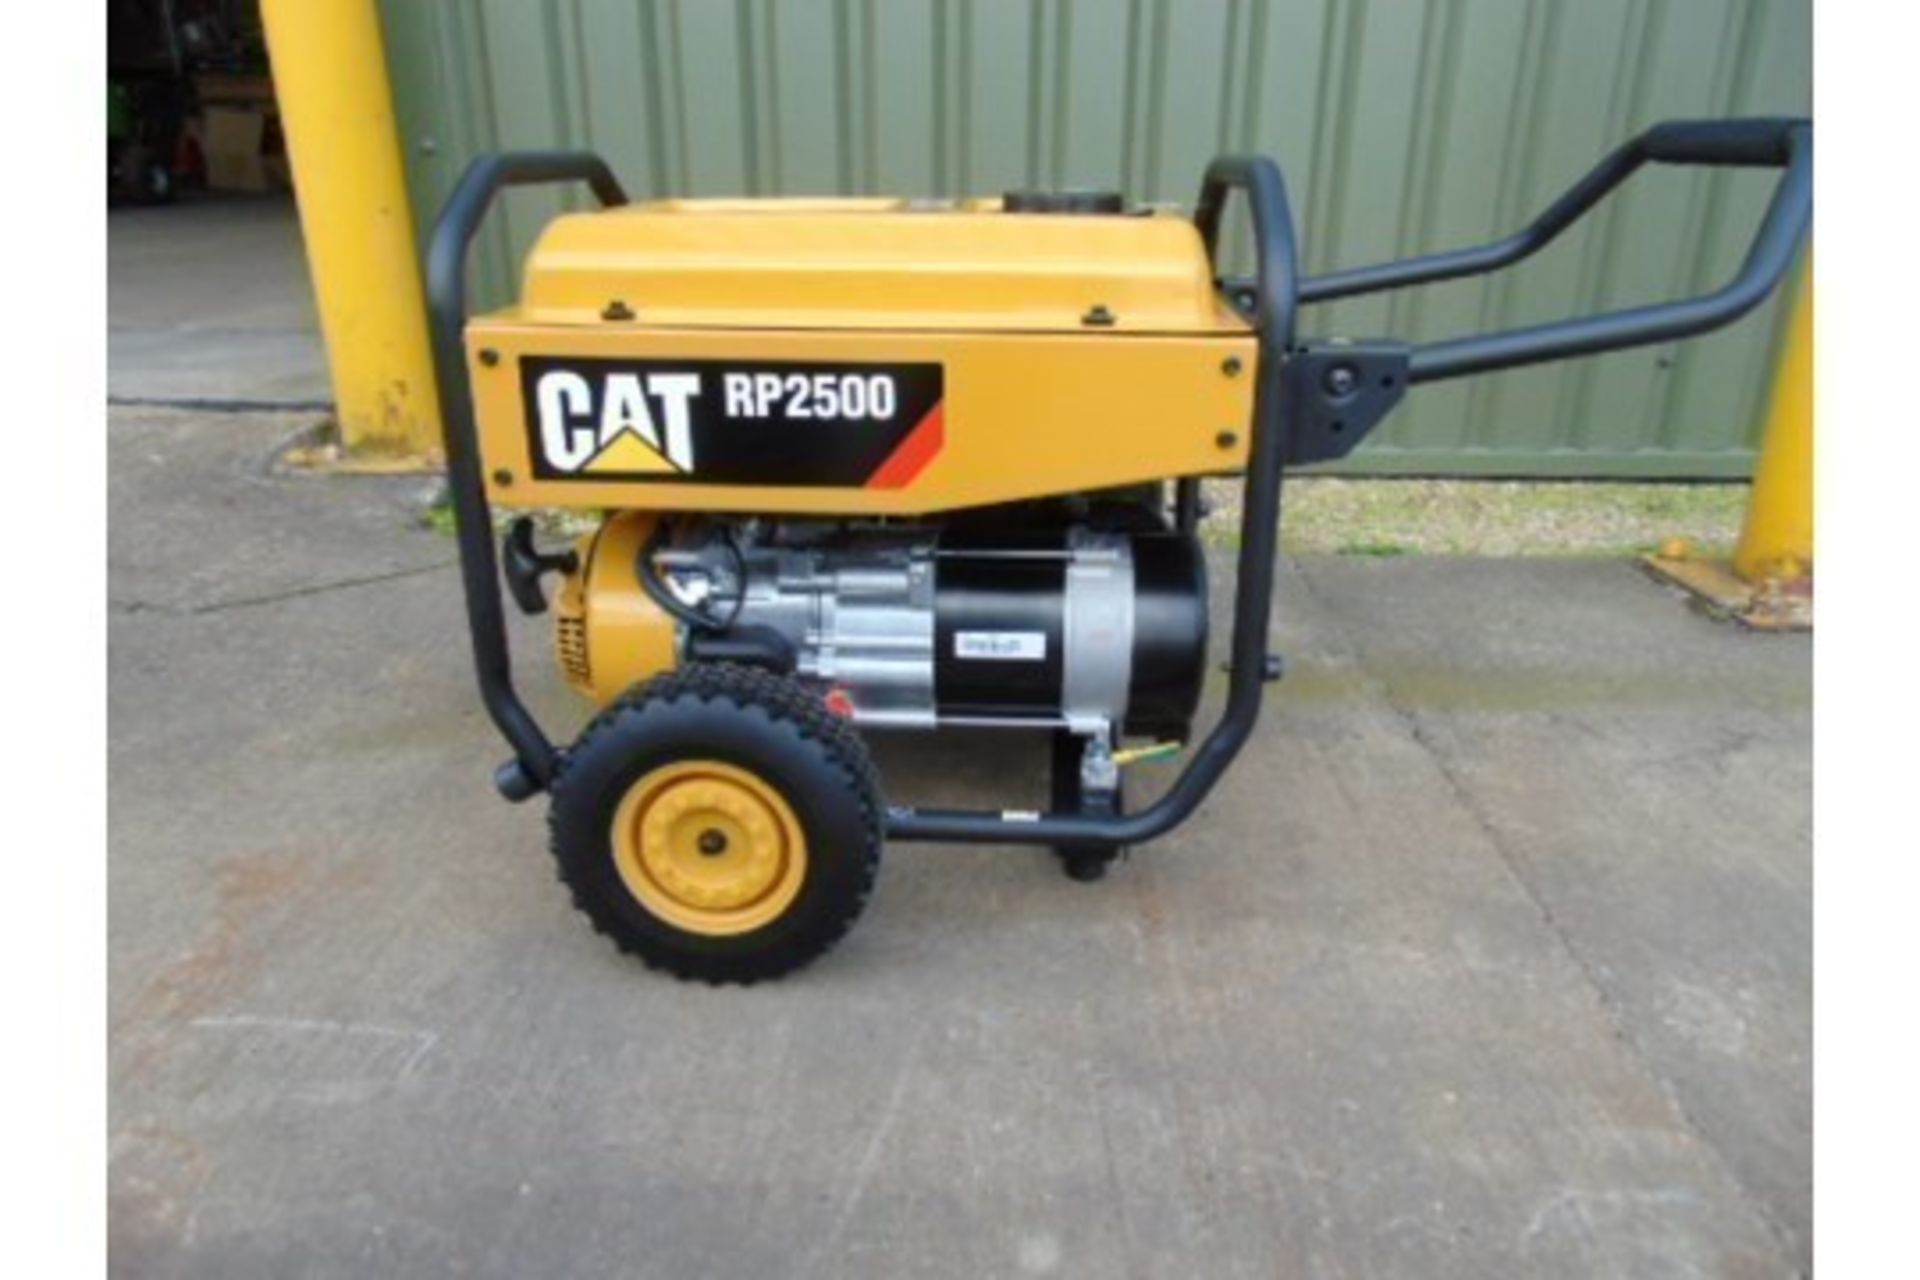 Lot 346 - UNISSUED Caterpillar RP2500 Industrial Petrol Generator.